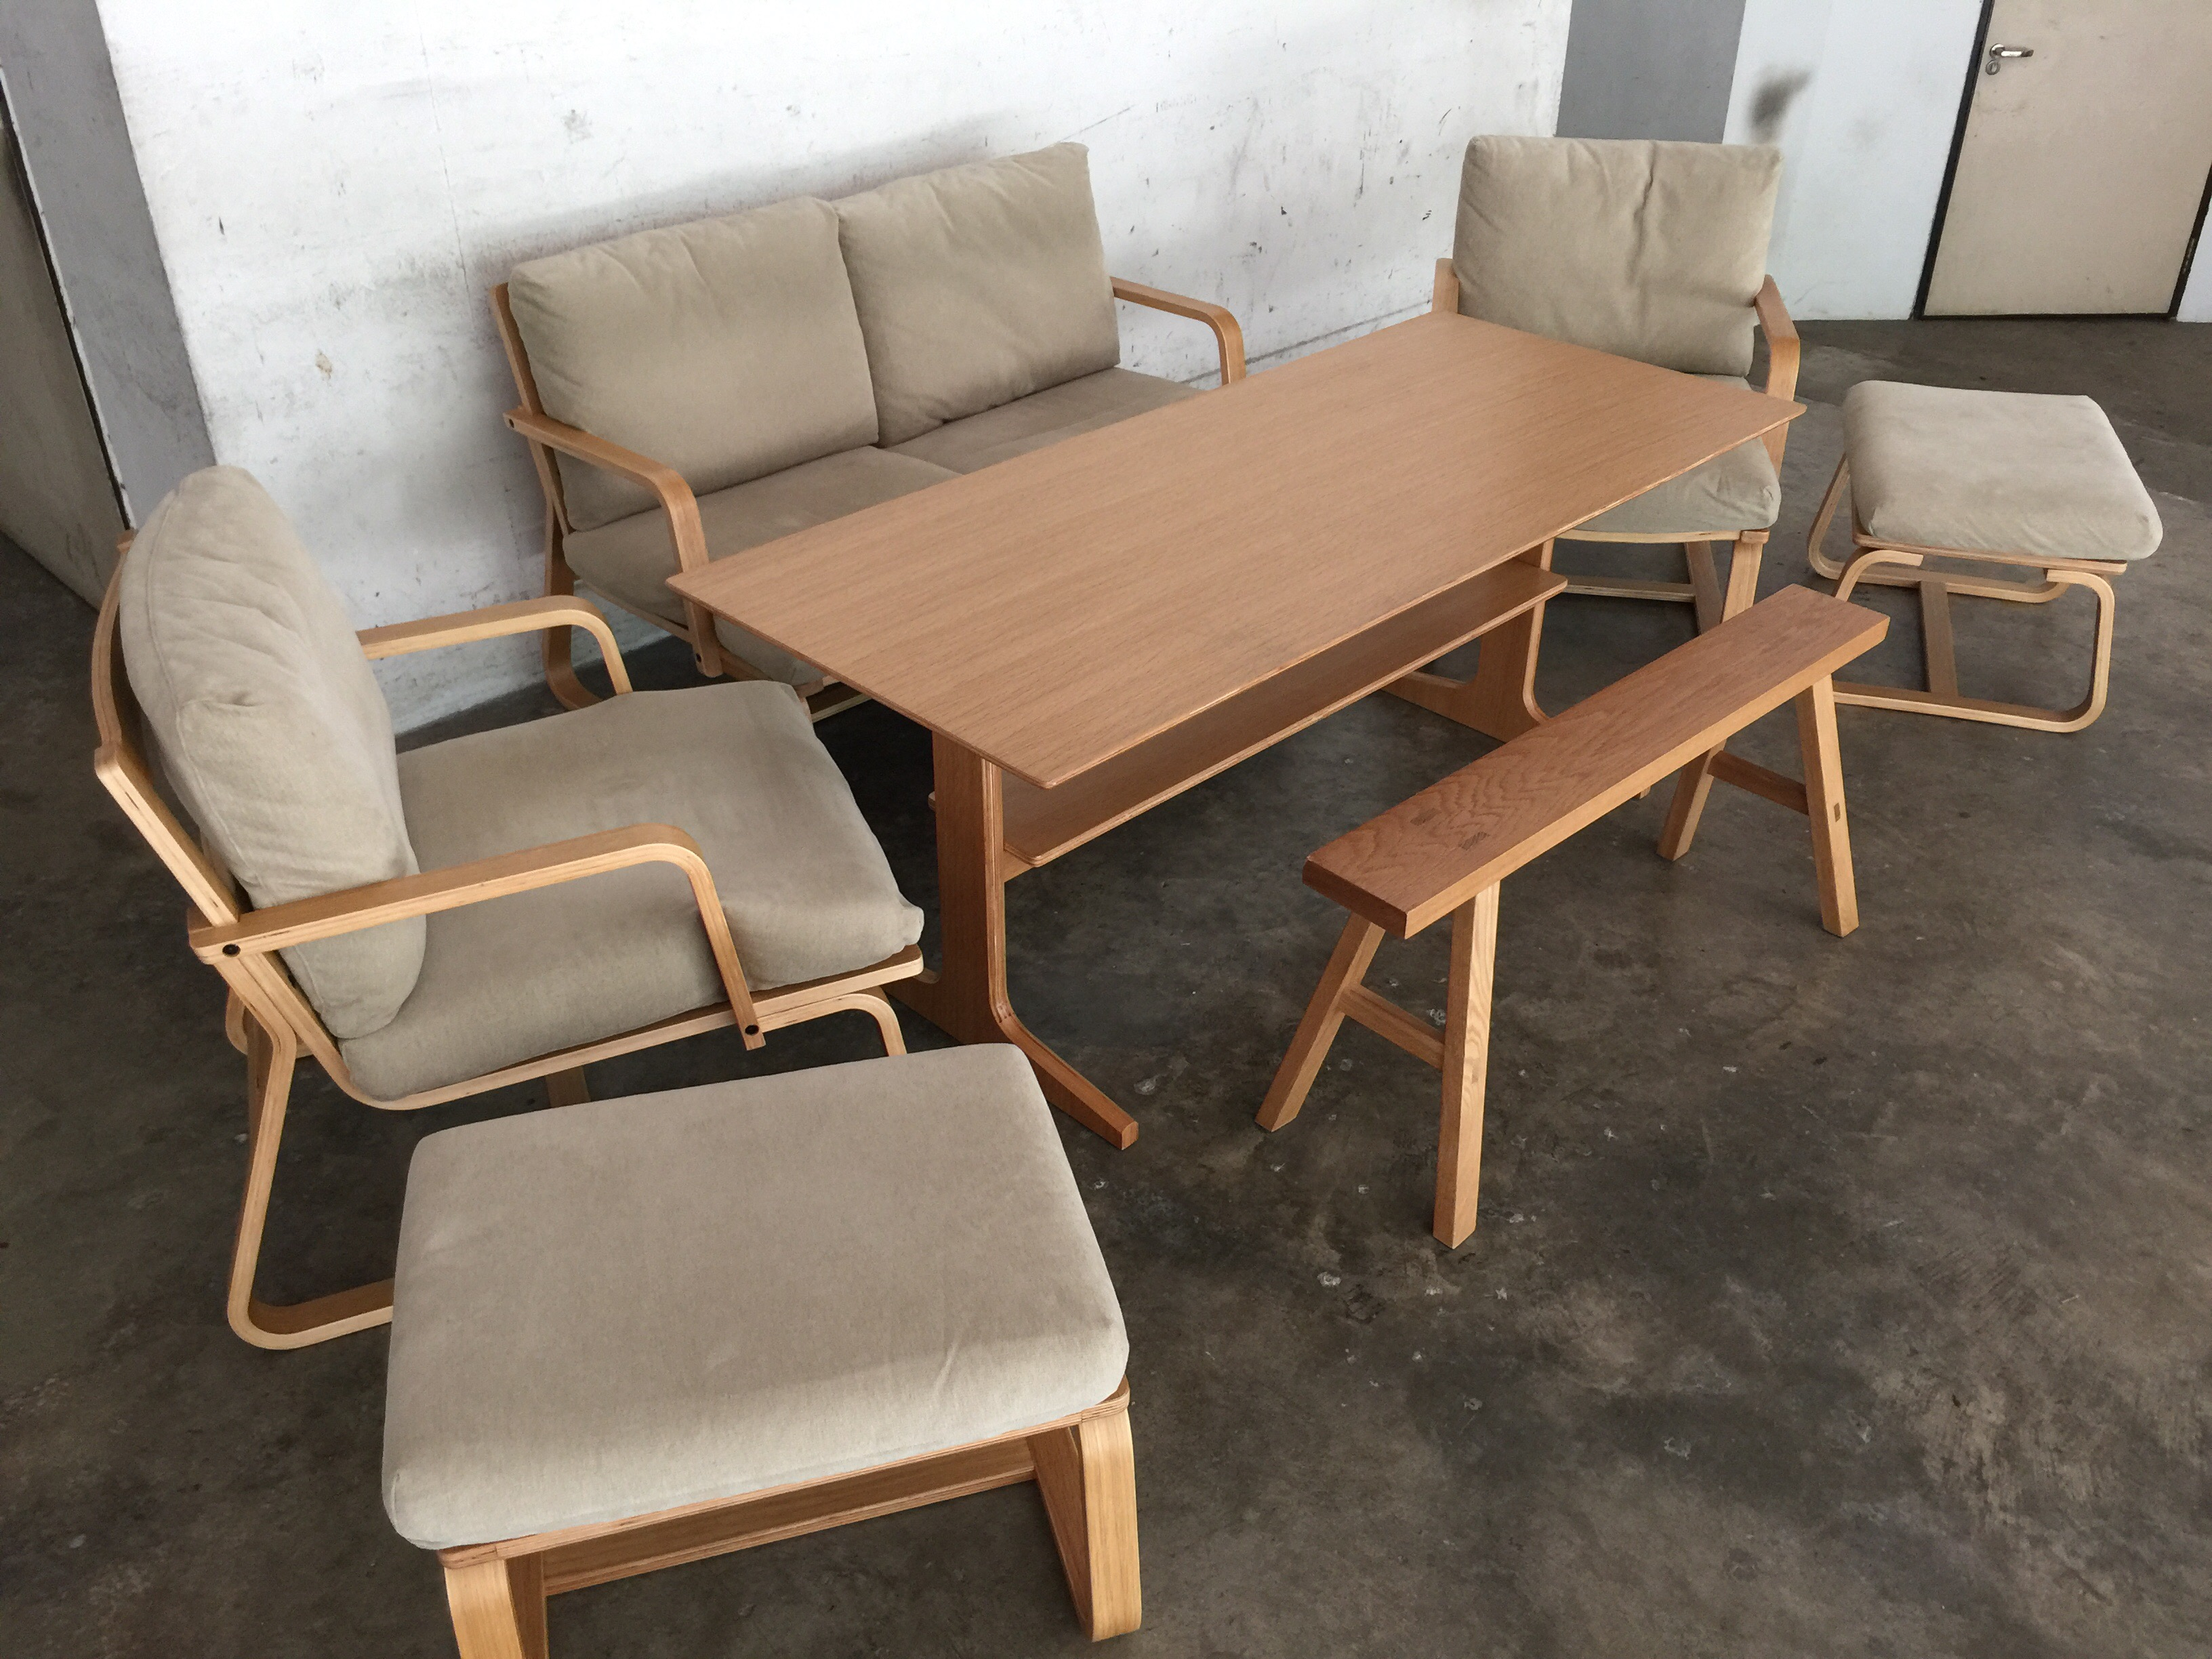 Japanese style dining living set henry furnishing for Furniture rental japan